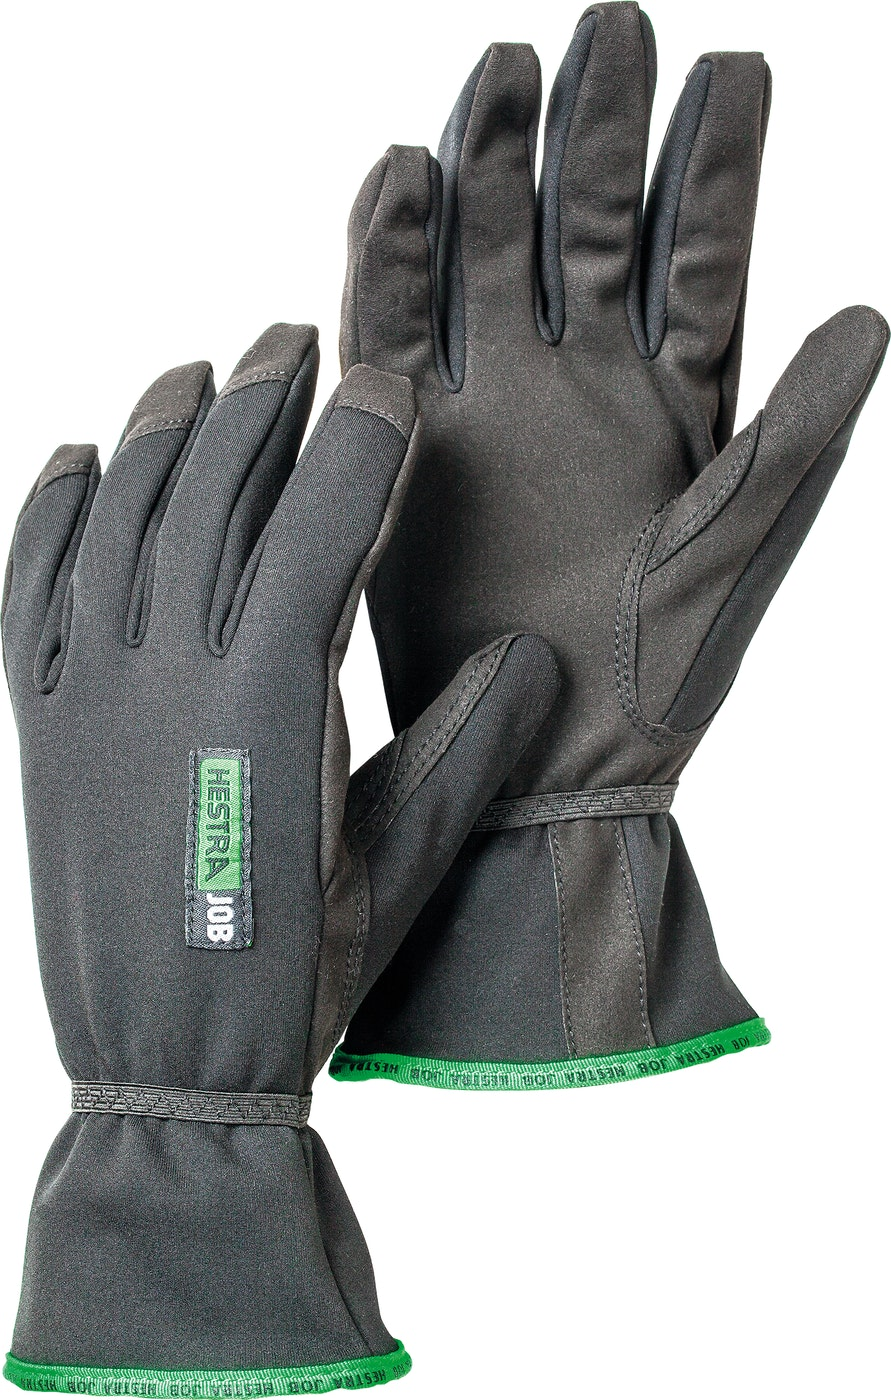 Product image for 74610 Windstopper Action